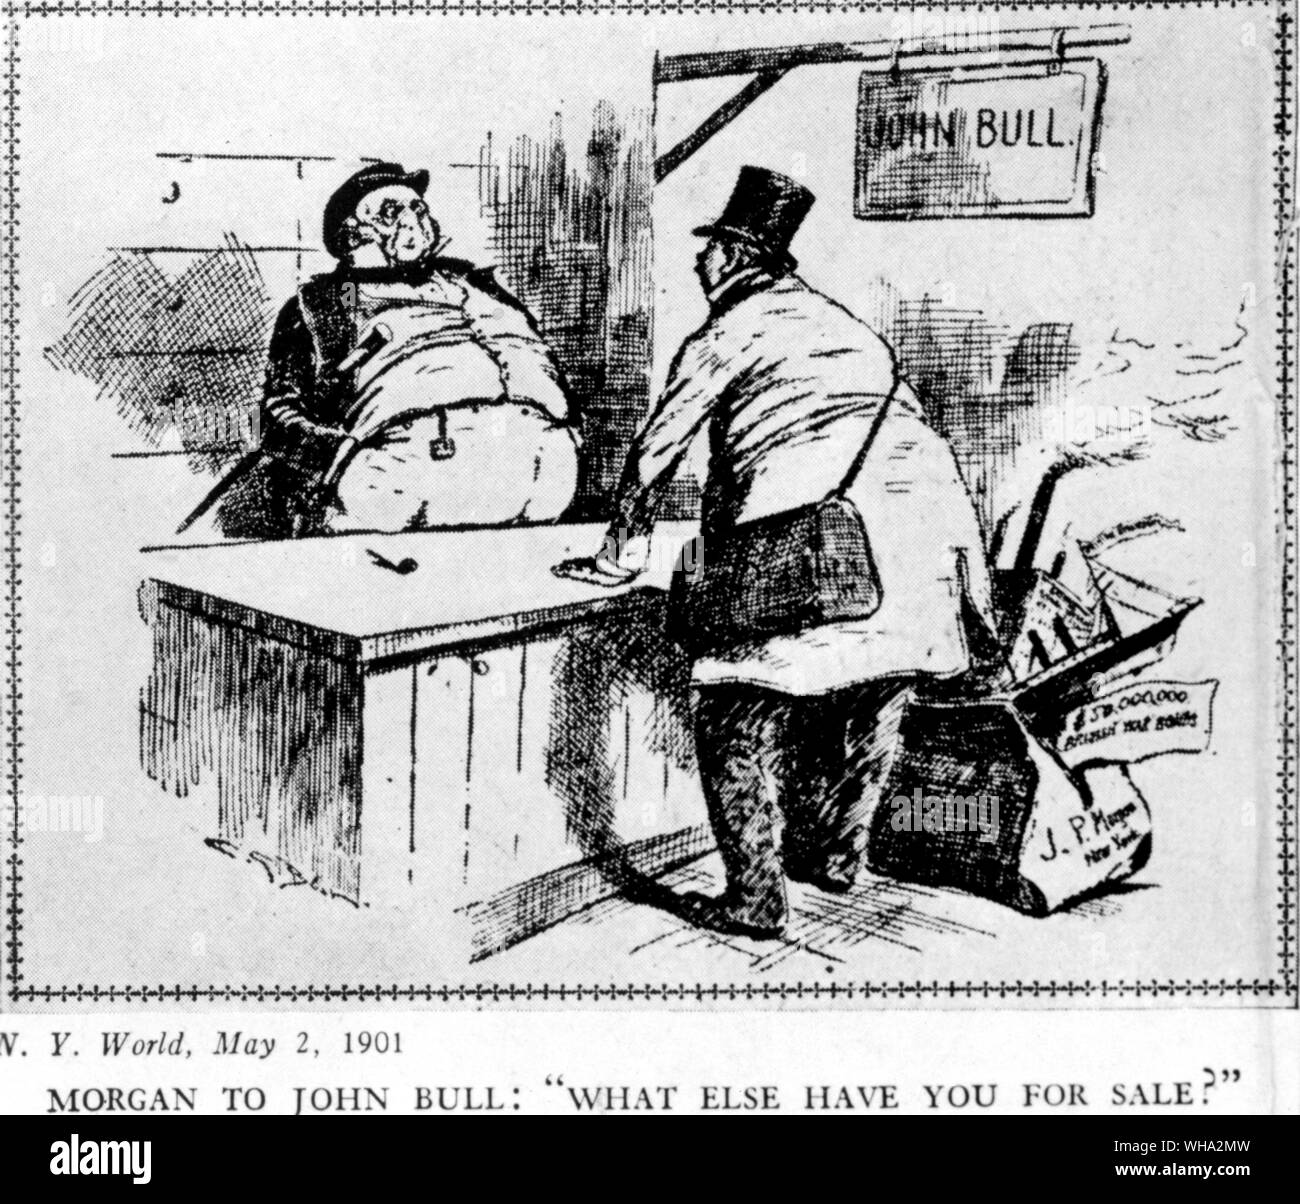 From New York World 2 May 1901 cartoon  Morgan to John Bull What else have you for sale? Stock Photo